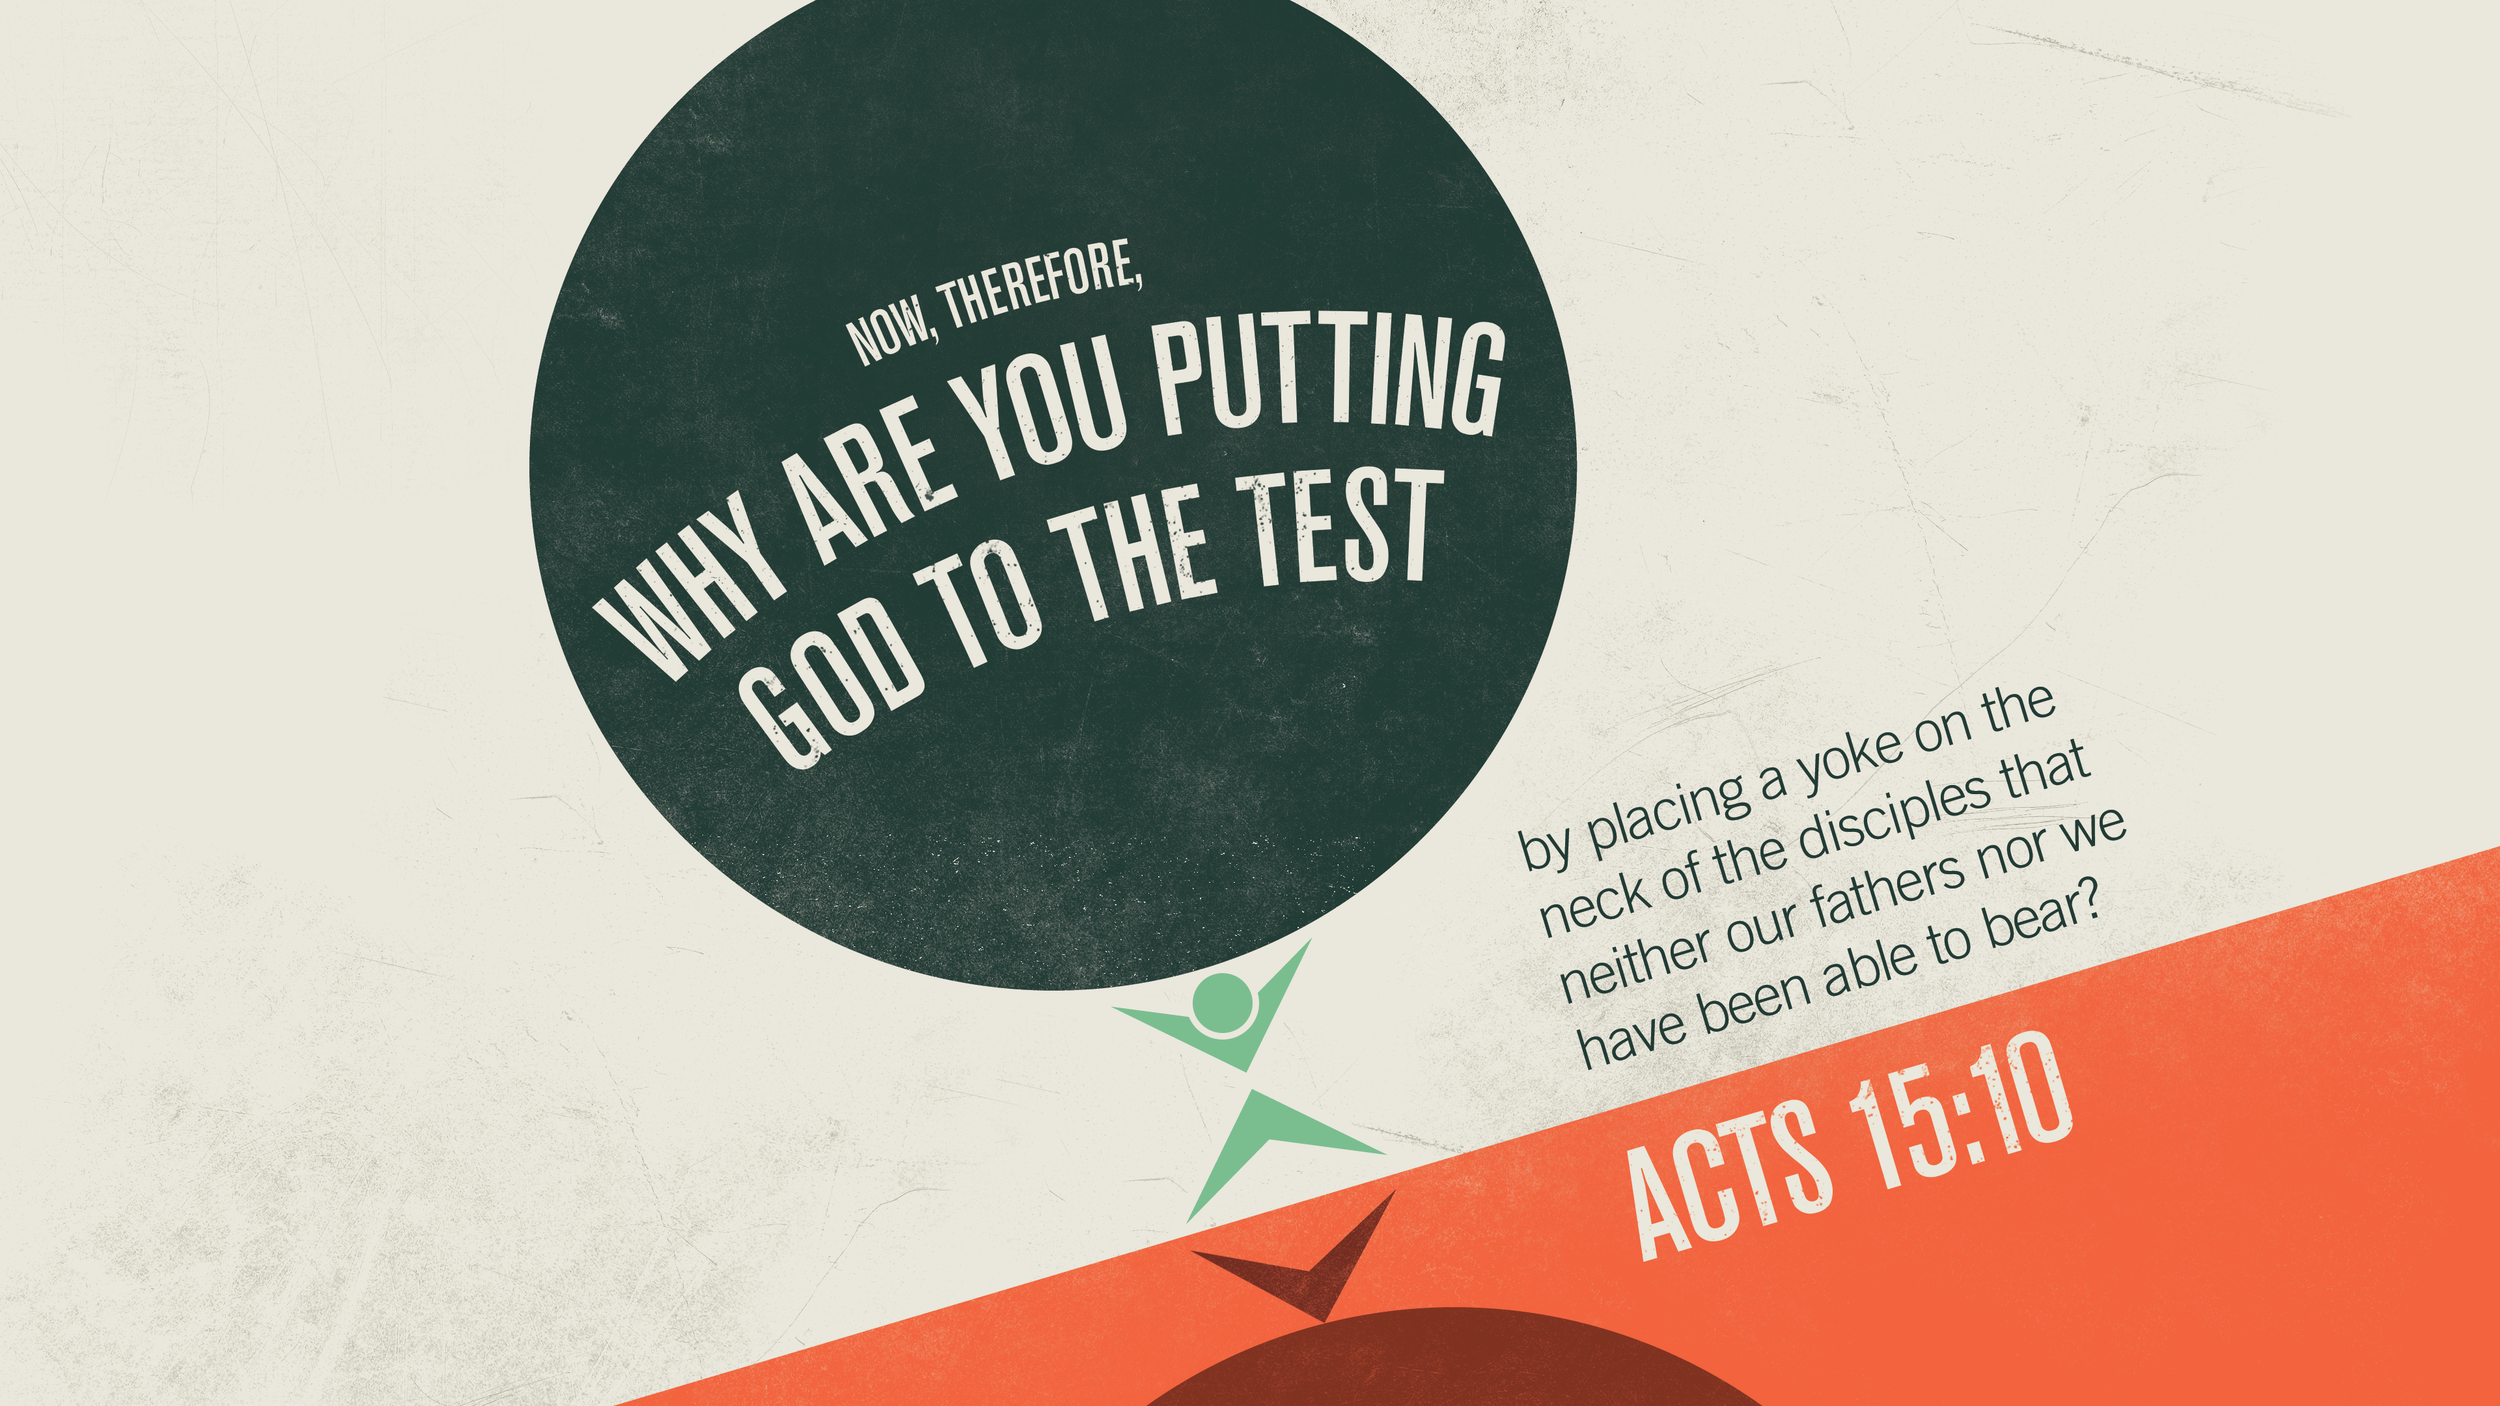 Acts_15_10-3840x2160.png